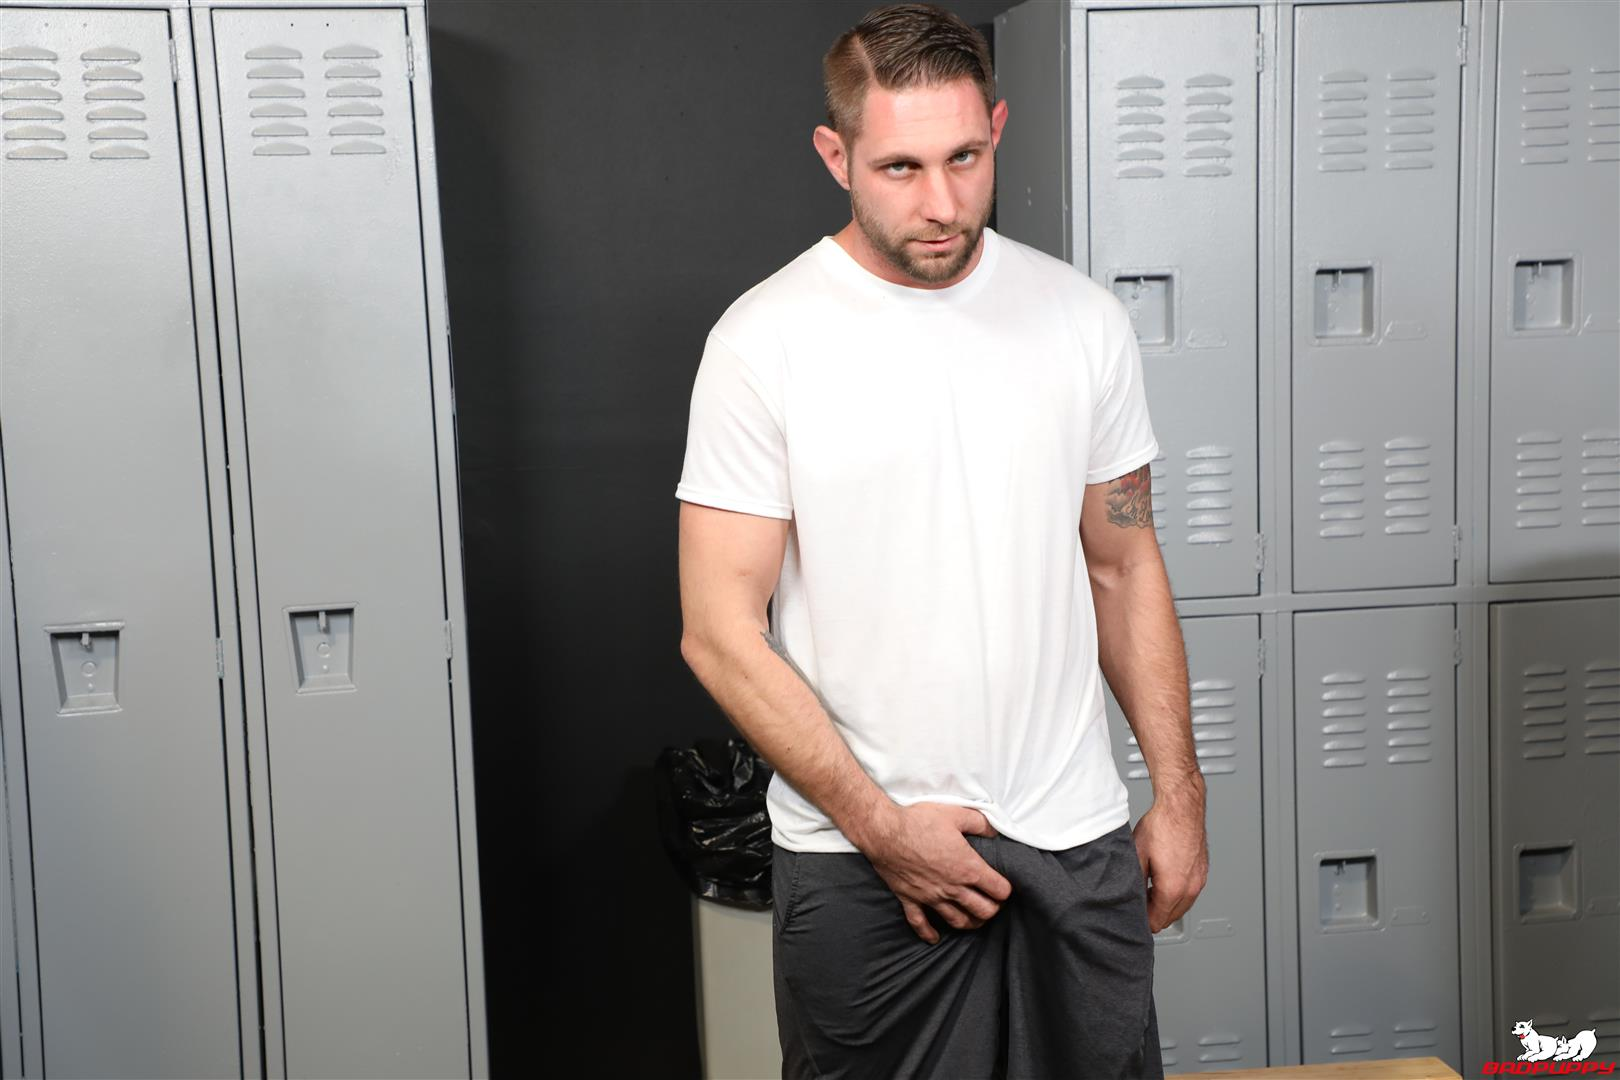 Badpuppy-Matt-Wingman-New-Yorker-With-A-Big-Cock-Jerking-Off-03 Sexy New Yorker Jerks Off His Big Cut Cock In The Locker Room